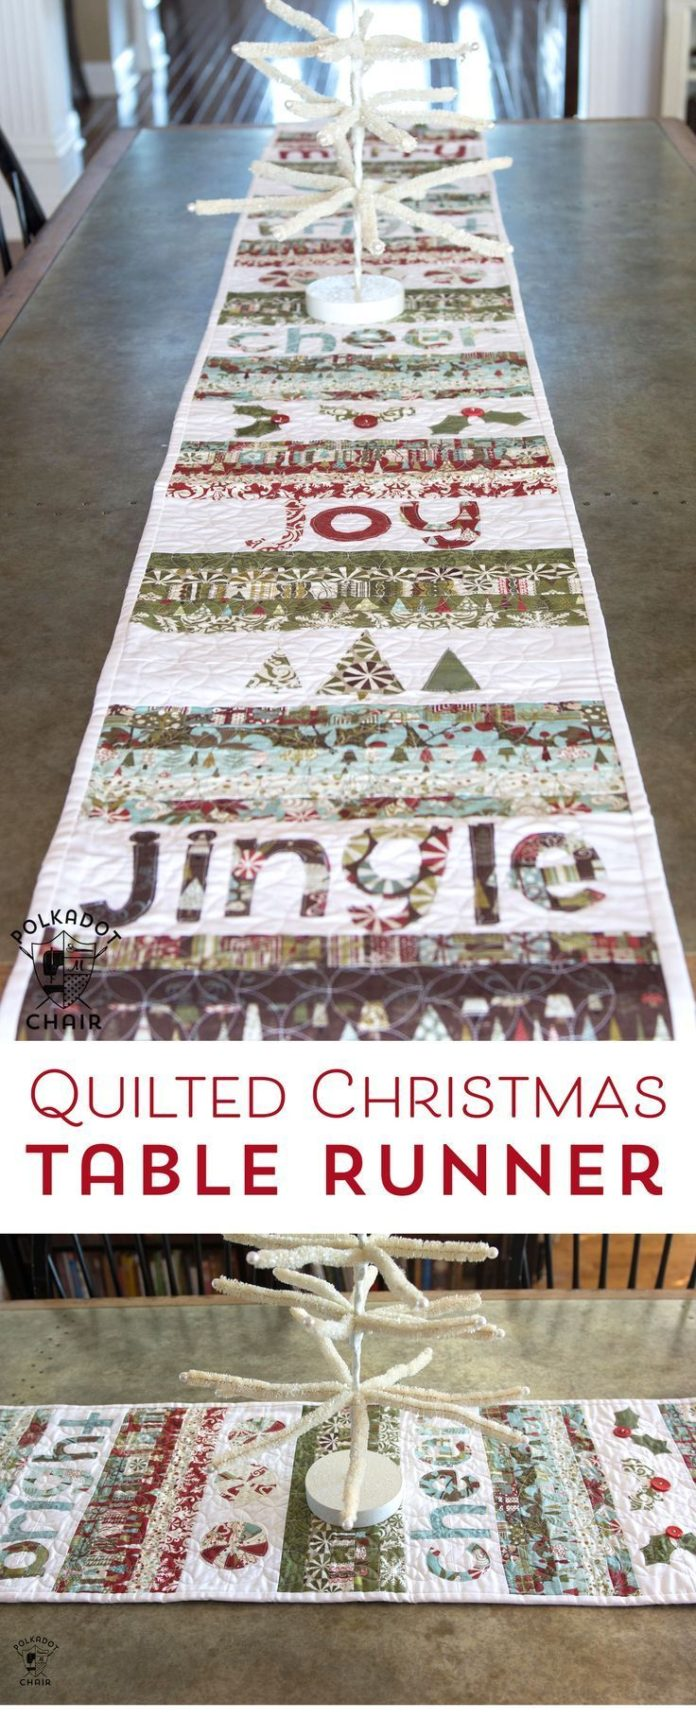 Christmas Table Runner Diy.Diy Crafts Free Sewing Pattern For A Quilted Christmas